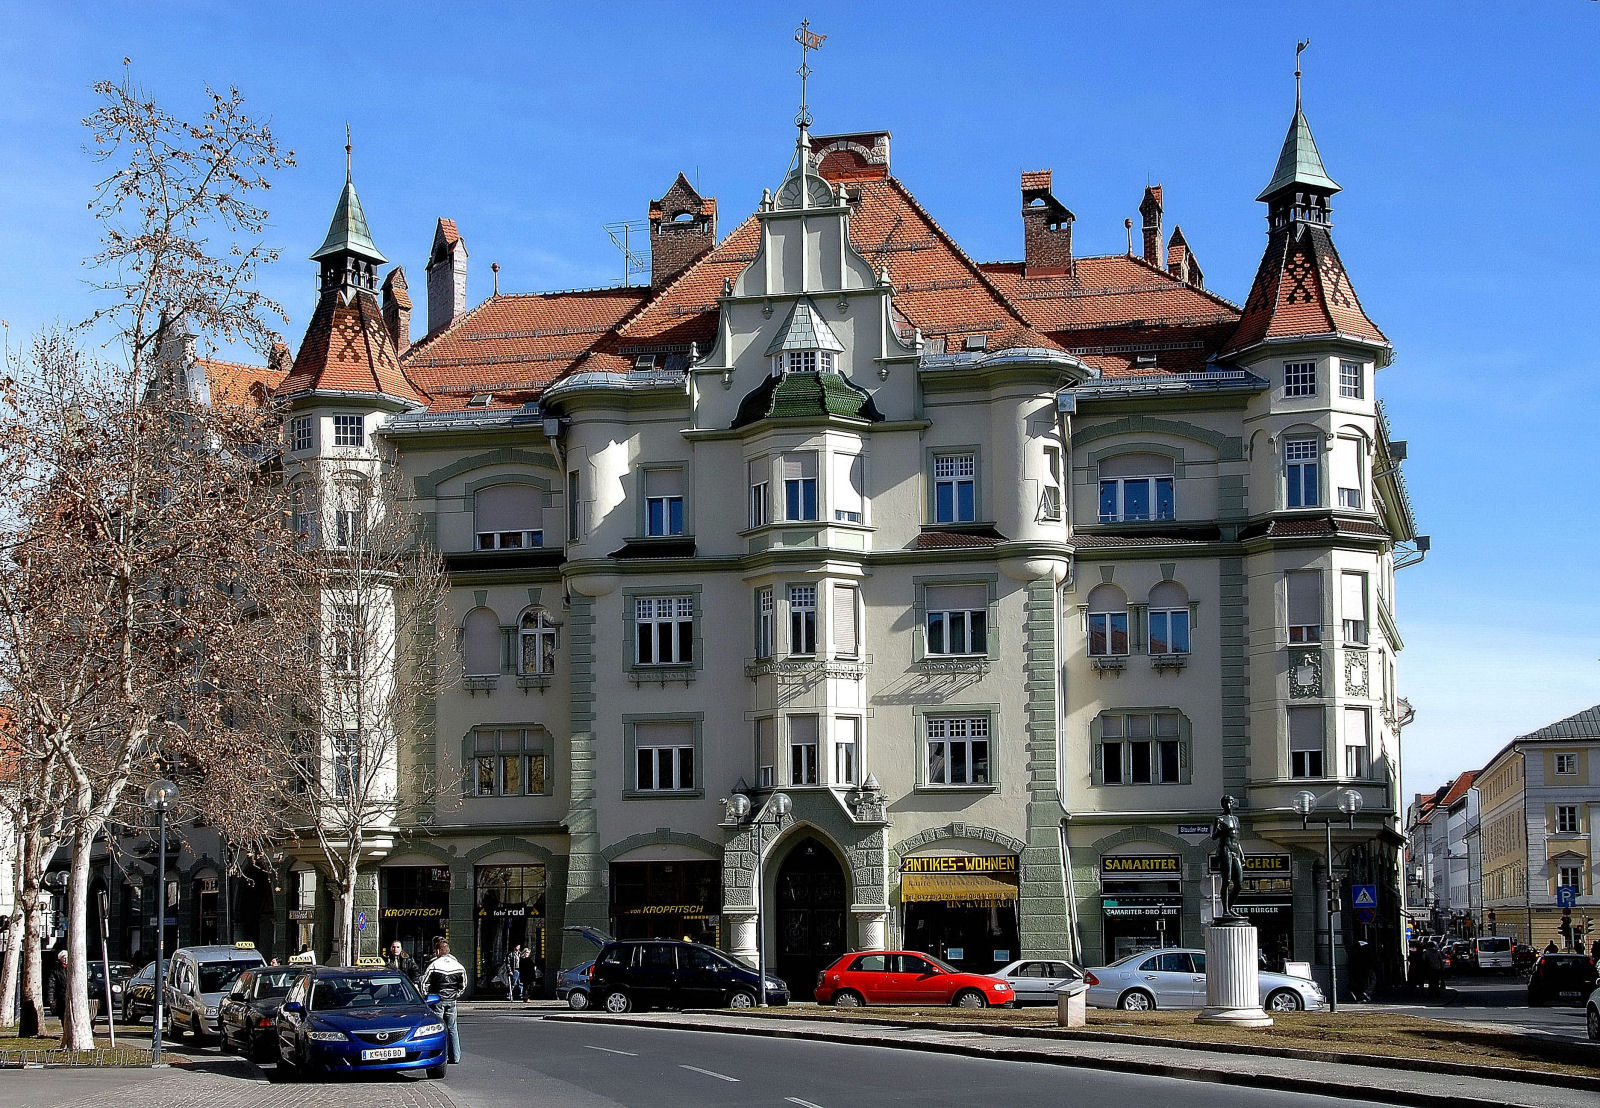 House Stauder, designed and built by Franz Baumgartner in 1909, city of Klagenfurt, Carinthia, Austria